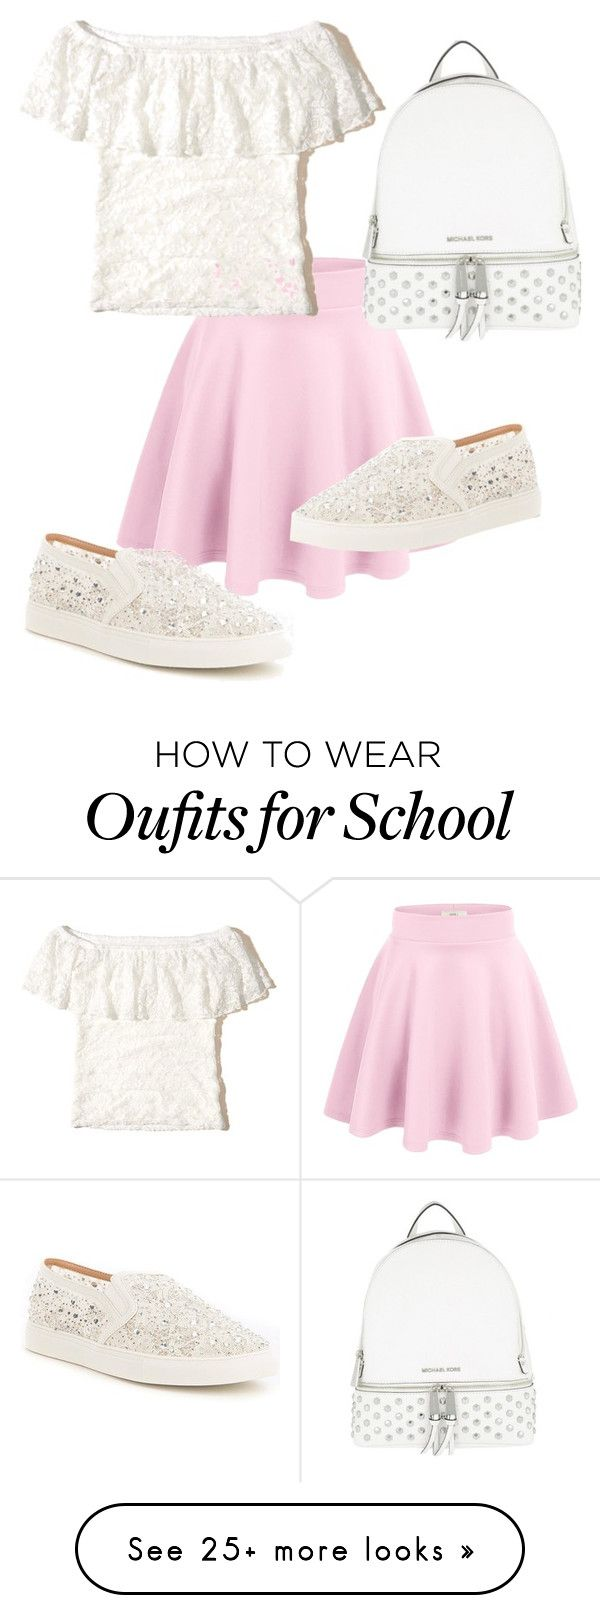 """Untitled #79"" by aidycat16 on Polyvore featuring Hollister Co., MICHAEL Michael Kors and Antonio Melani"